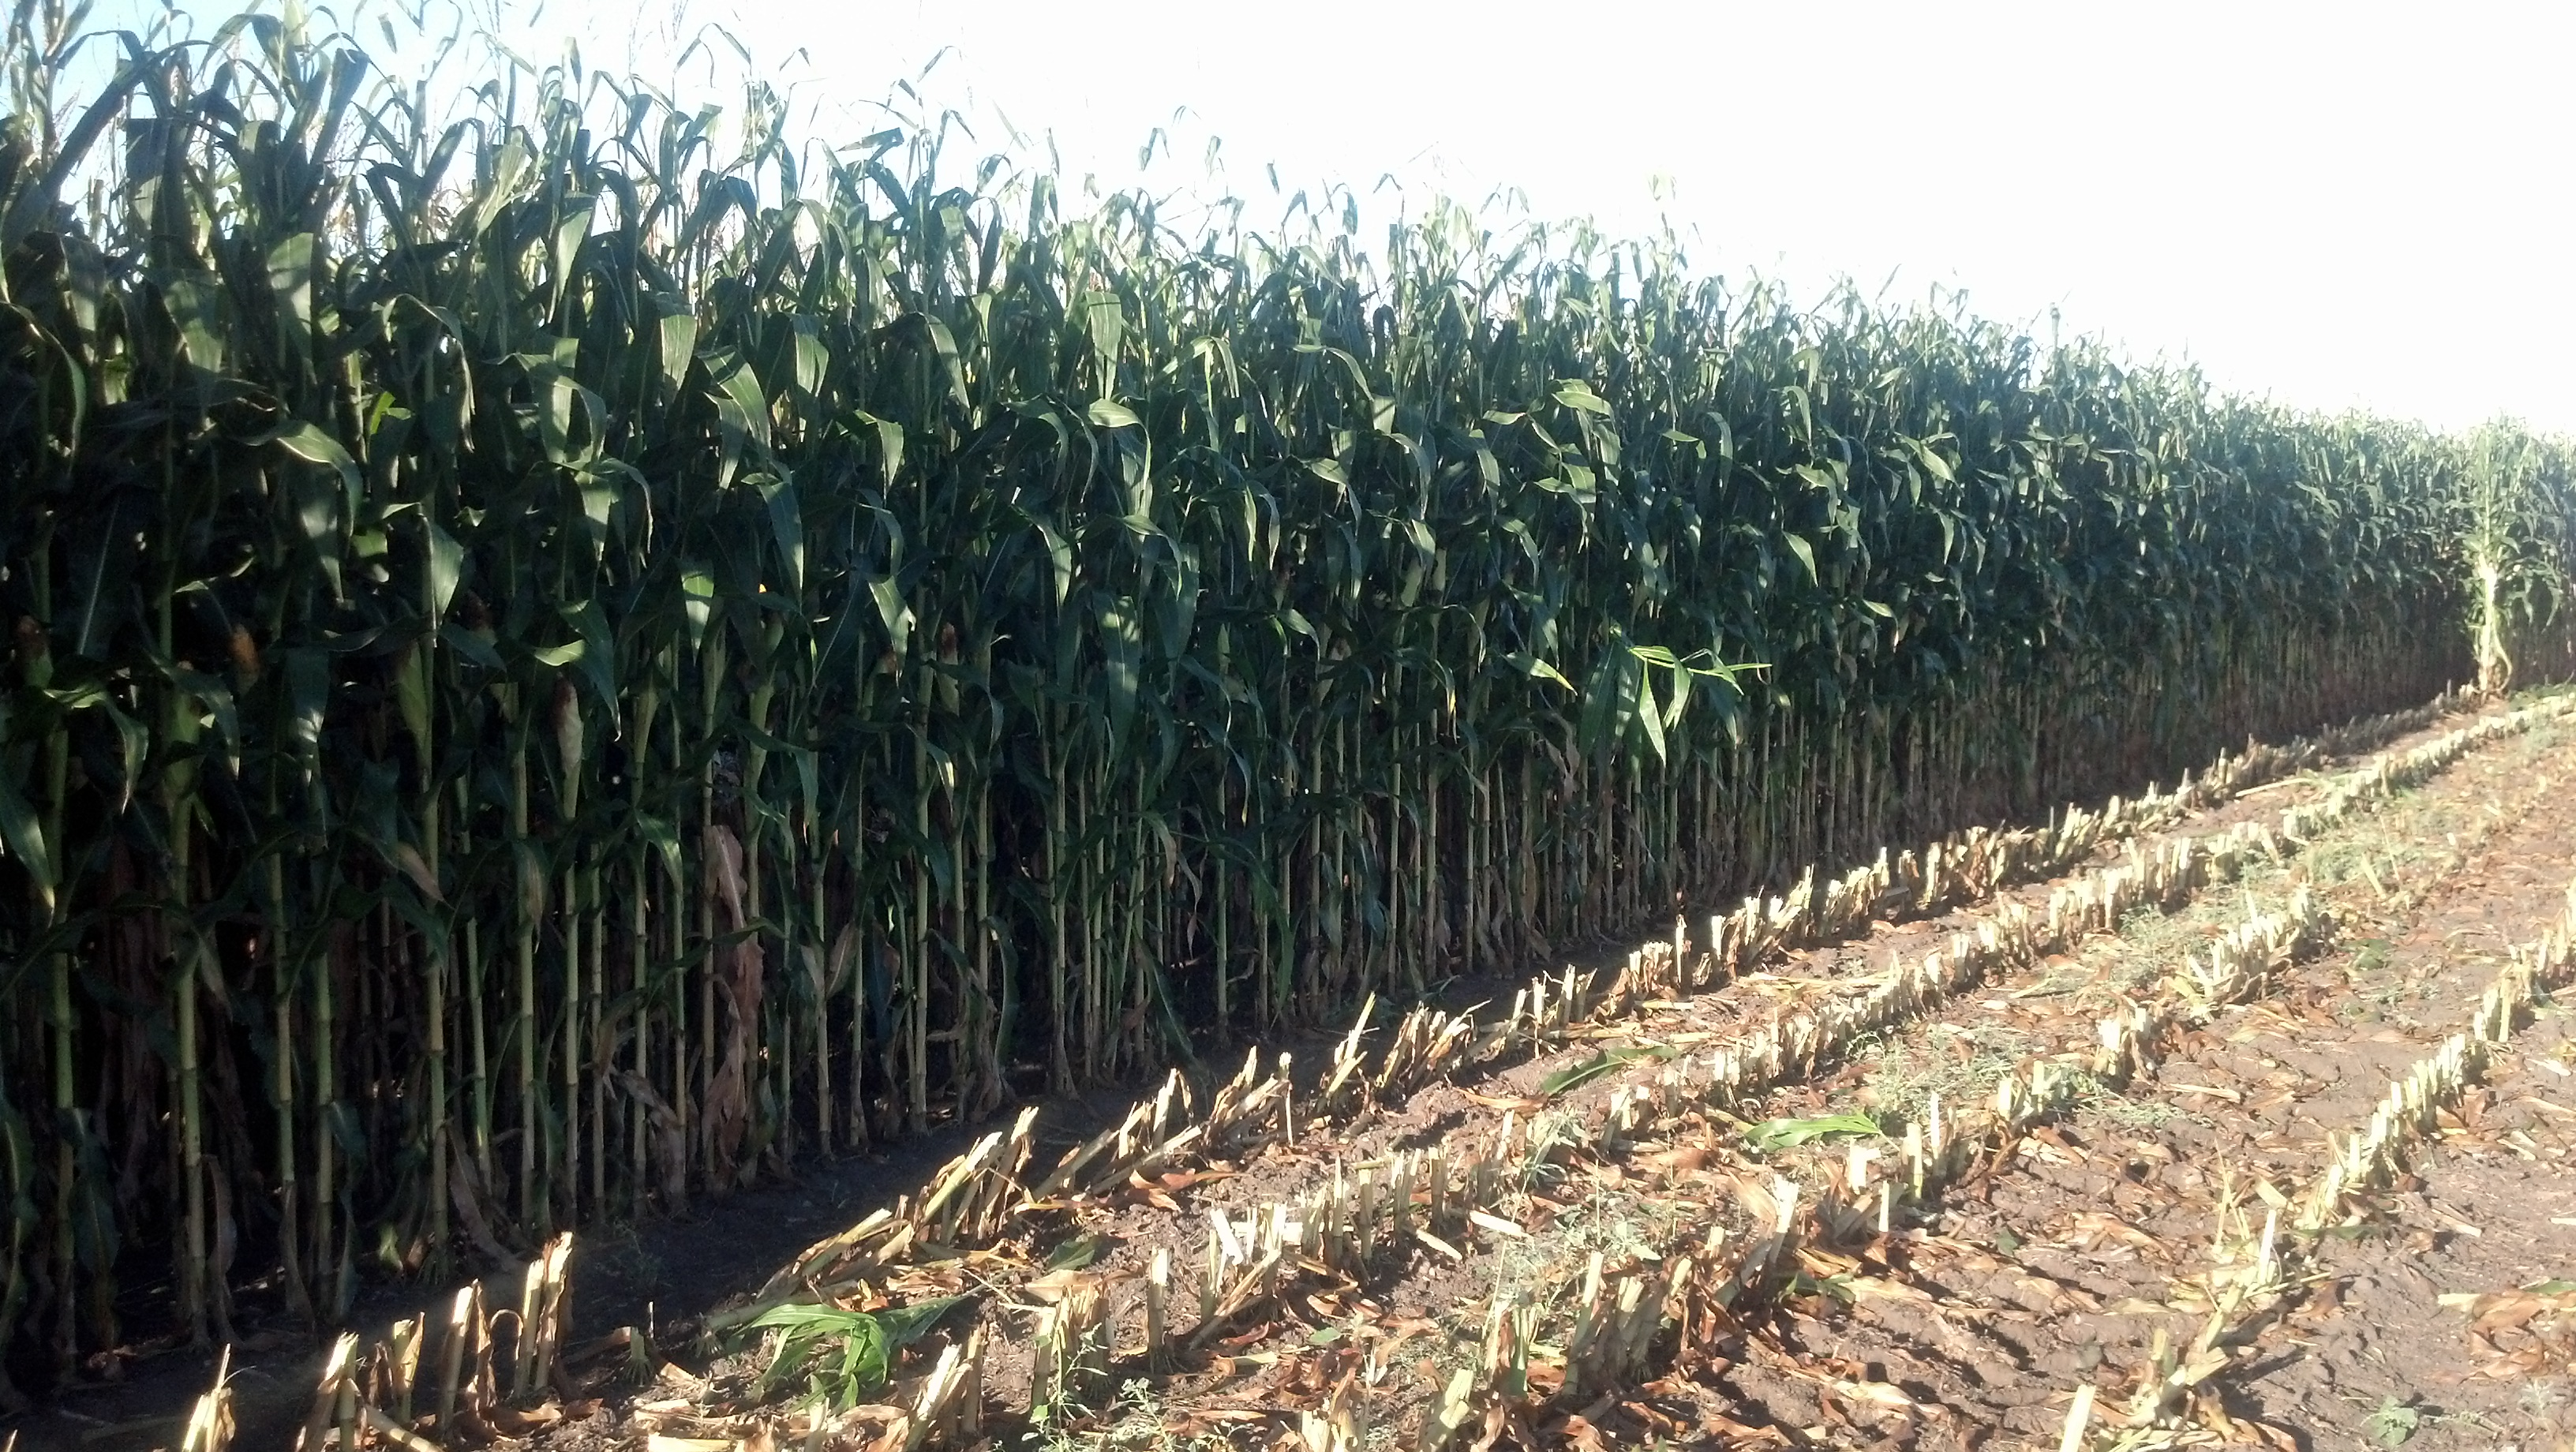 Learning what to do when the growing season ends before the corn crop is mature will be discussed at the Feb. 11 session. (NDSU Photo)